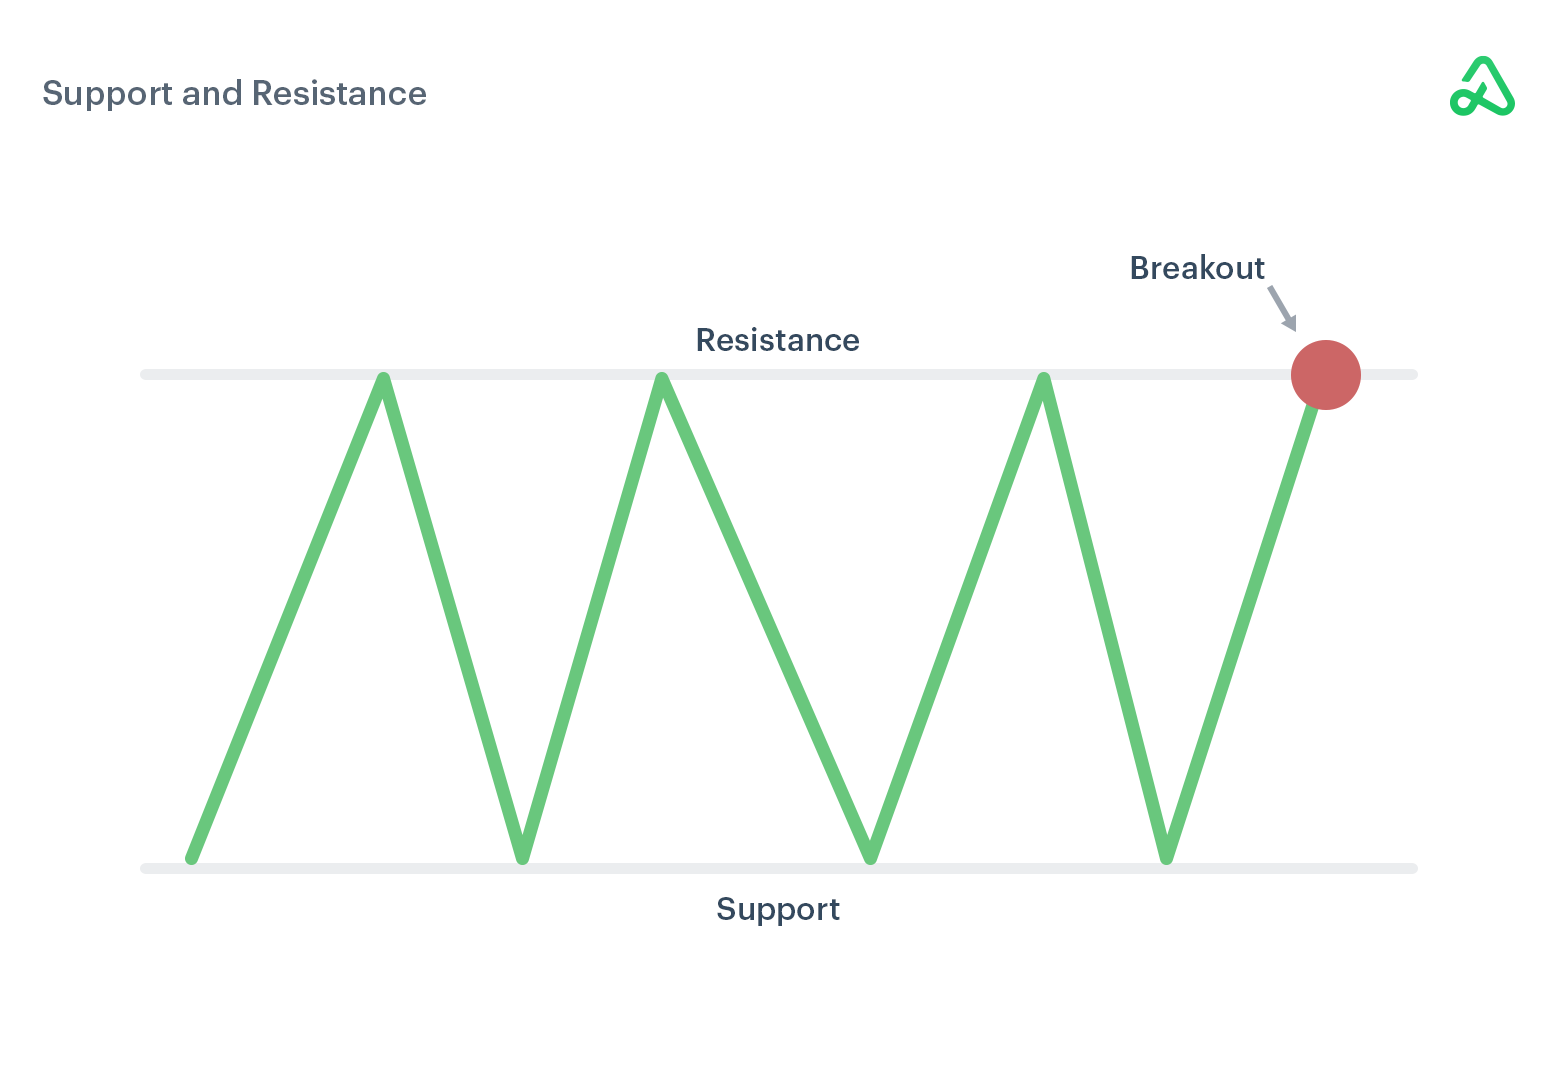 Support and Resistance example image